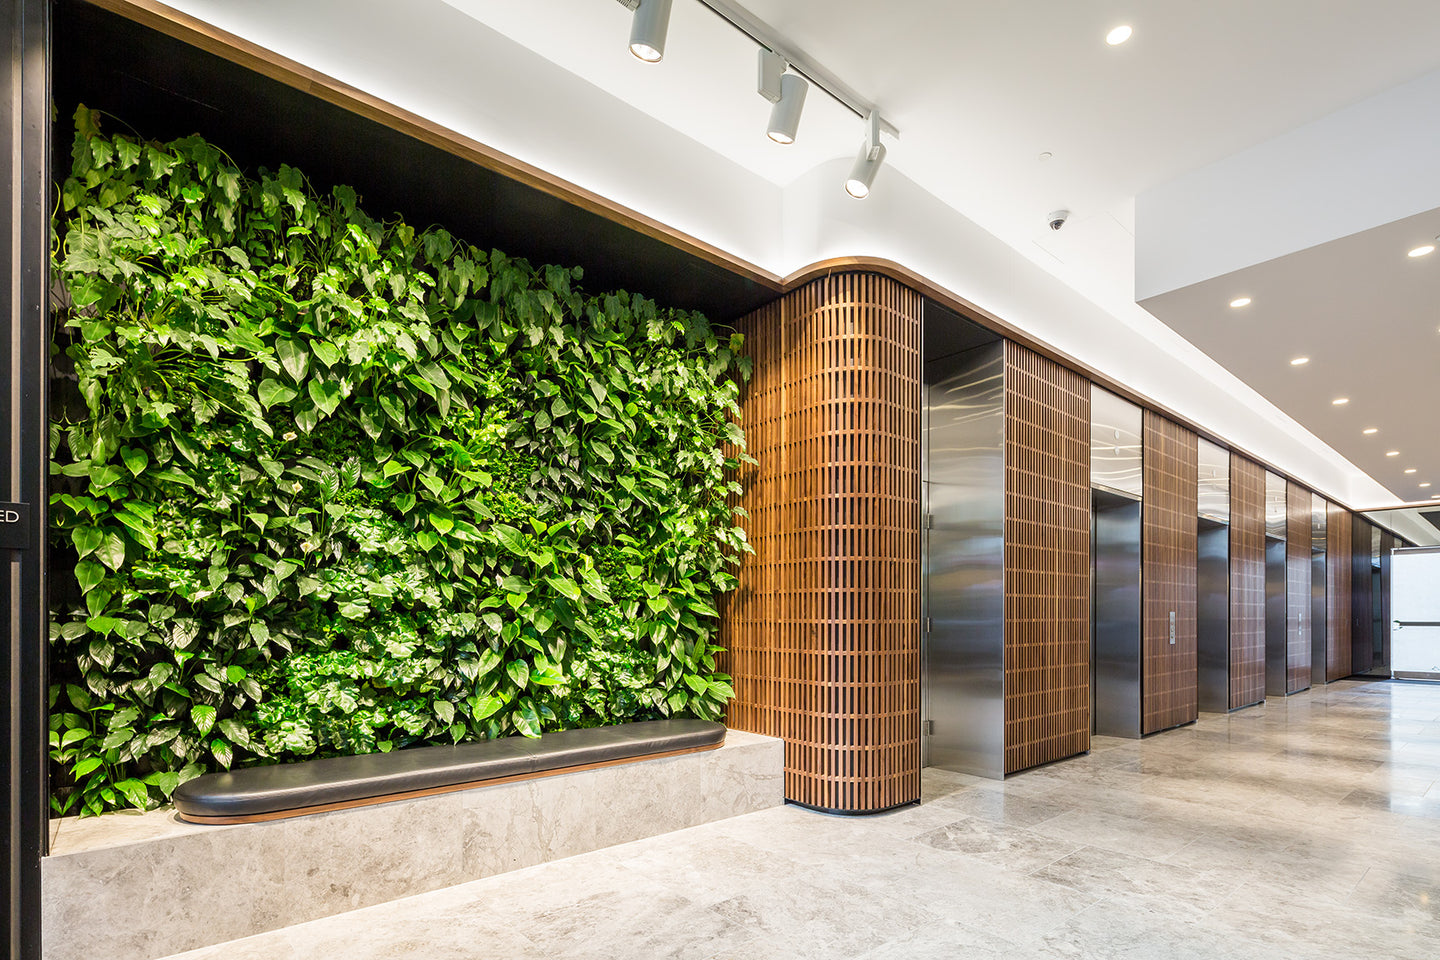 Vertical Gardens by Greenwall Solutions using Green4Air vertical green wall system